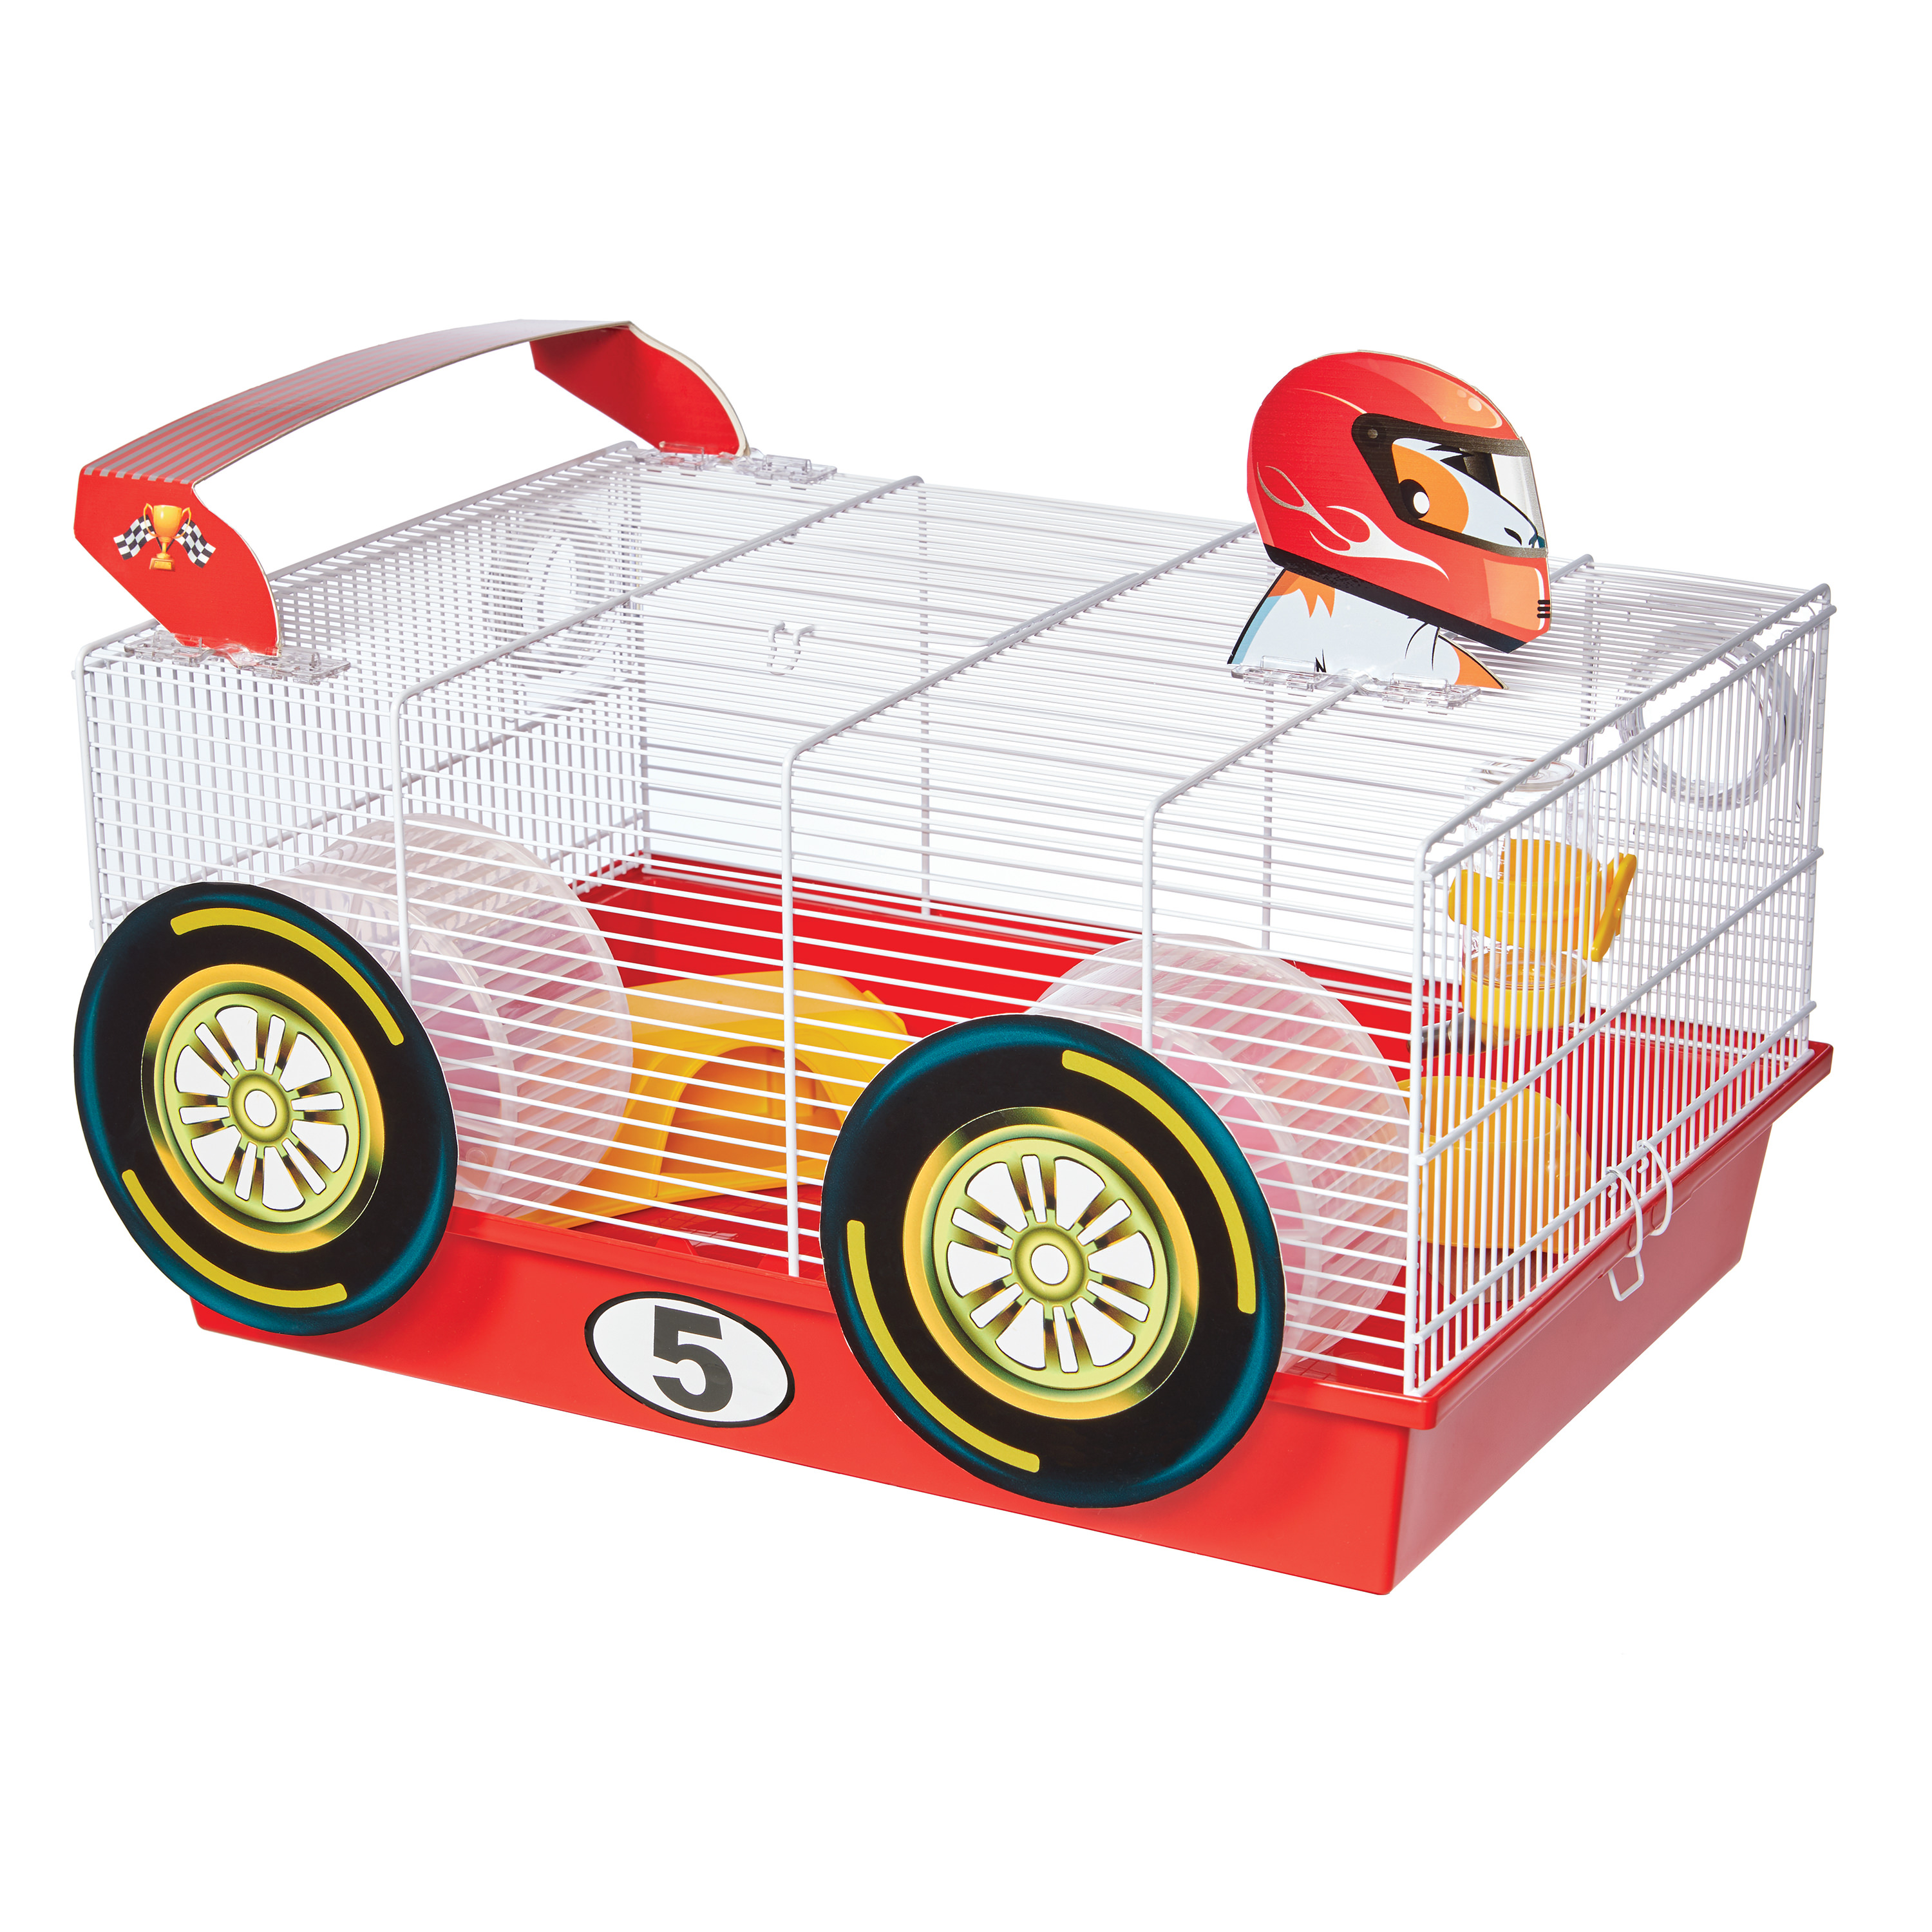 MidWest Homes for Pets Race Car Hamster Cage